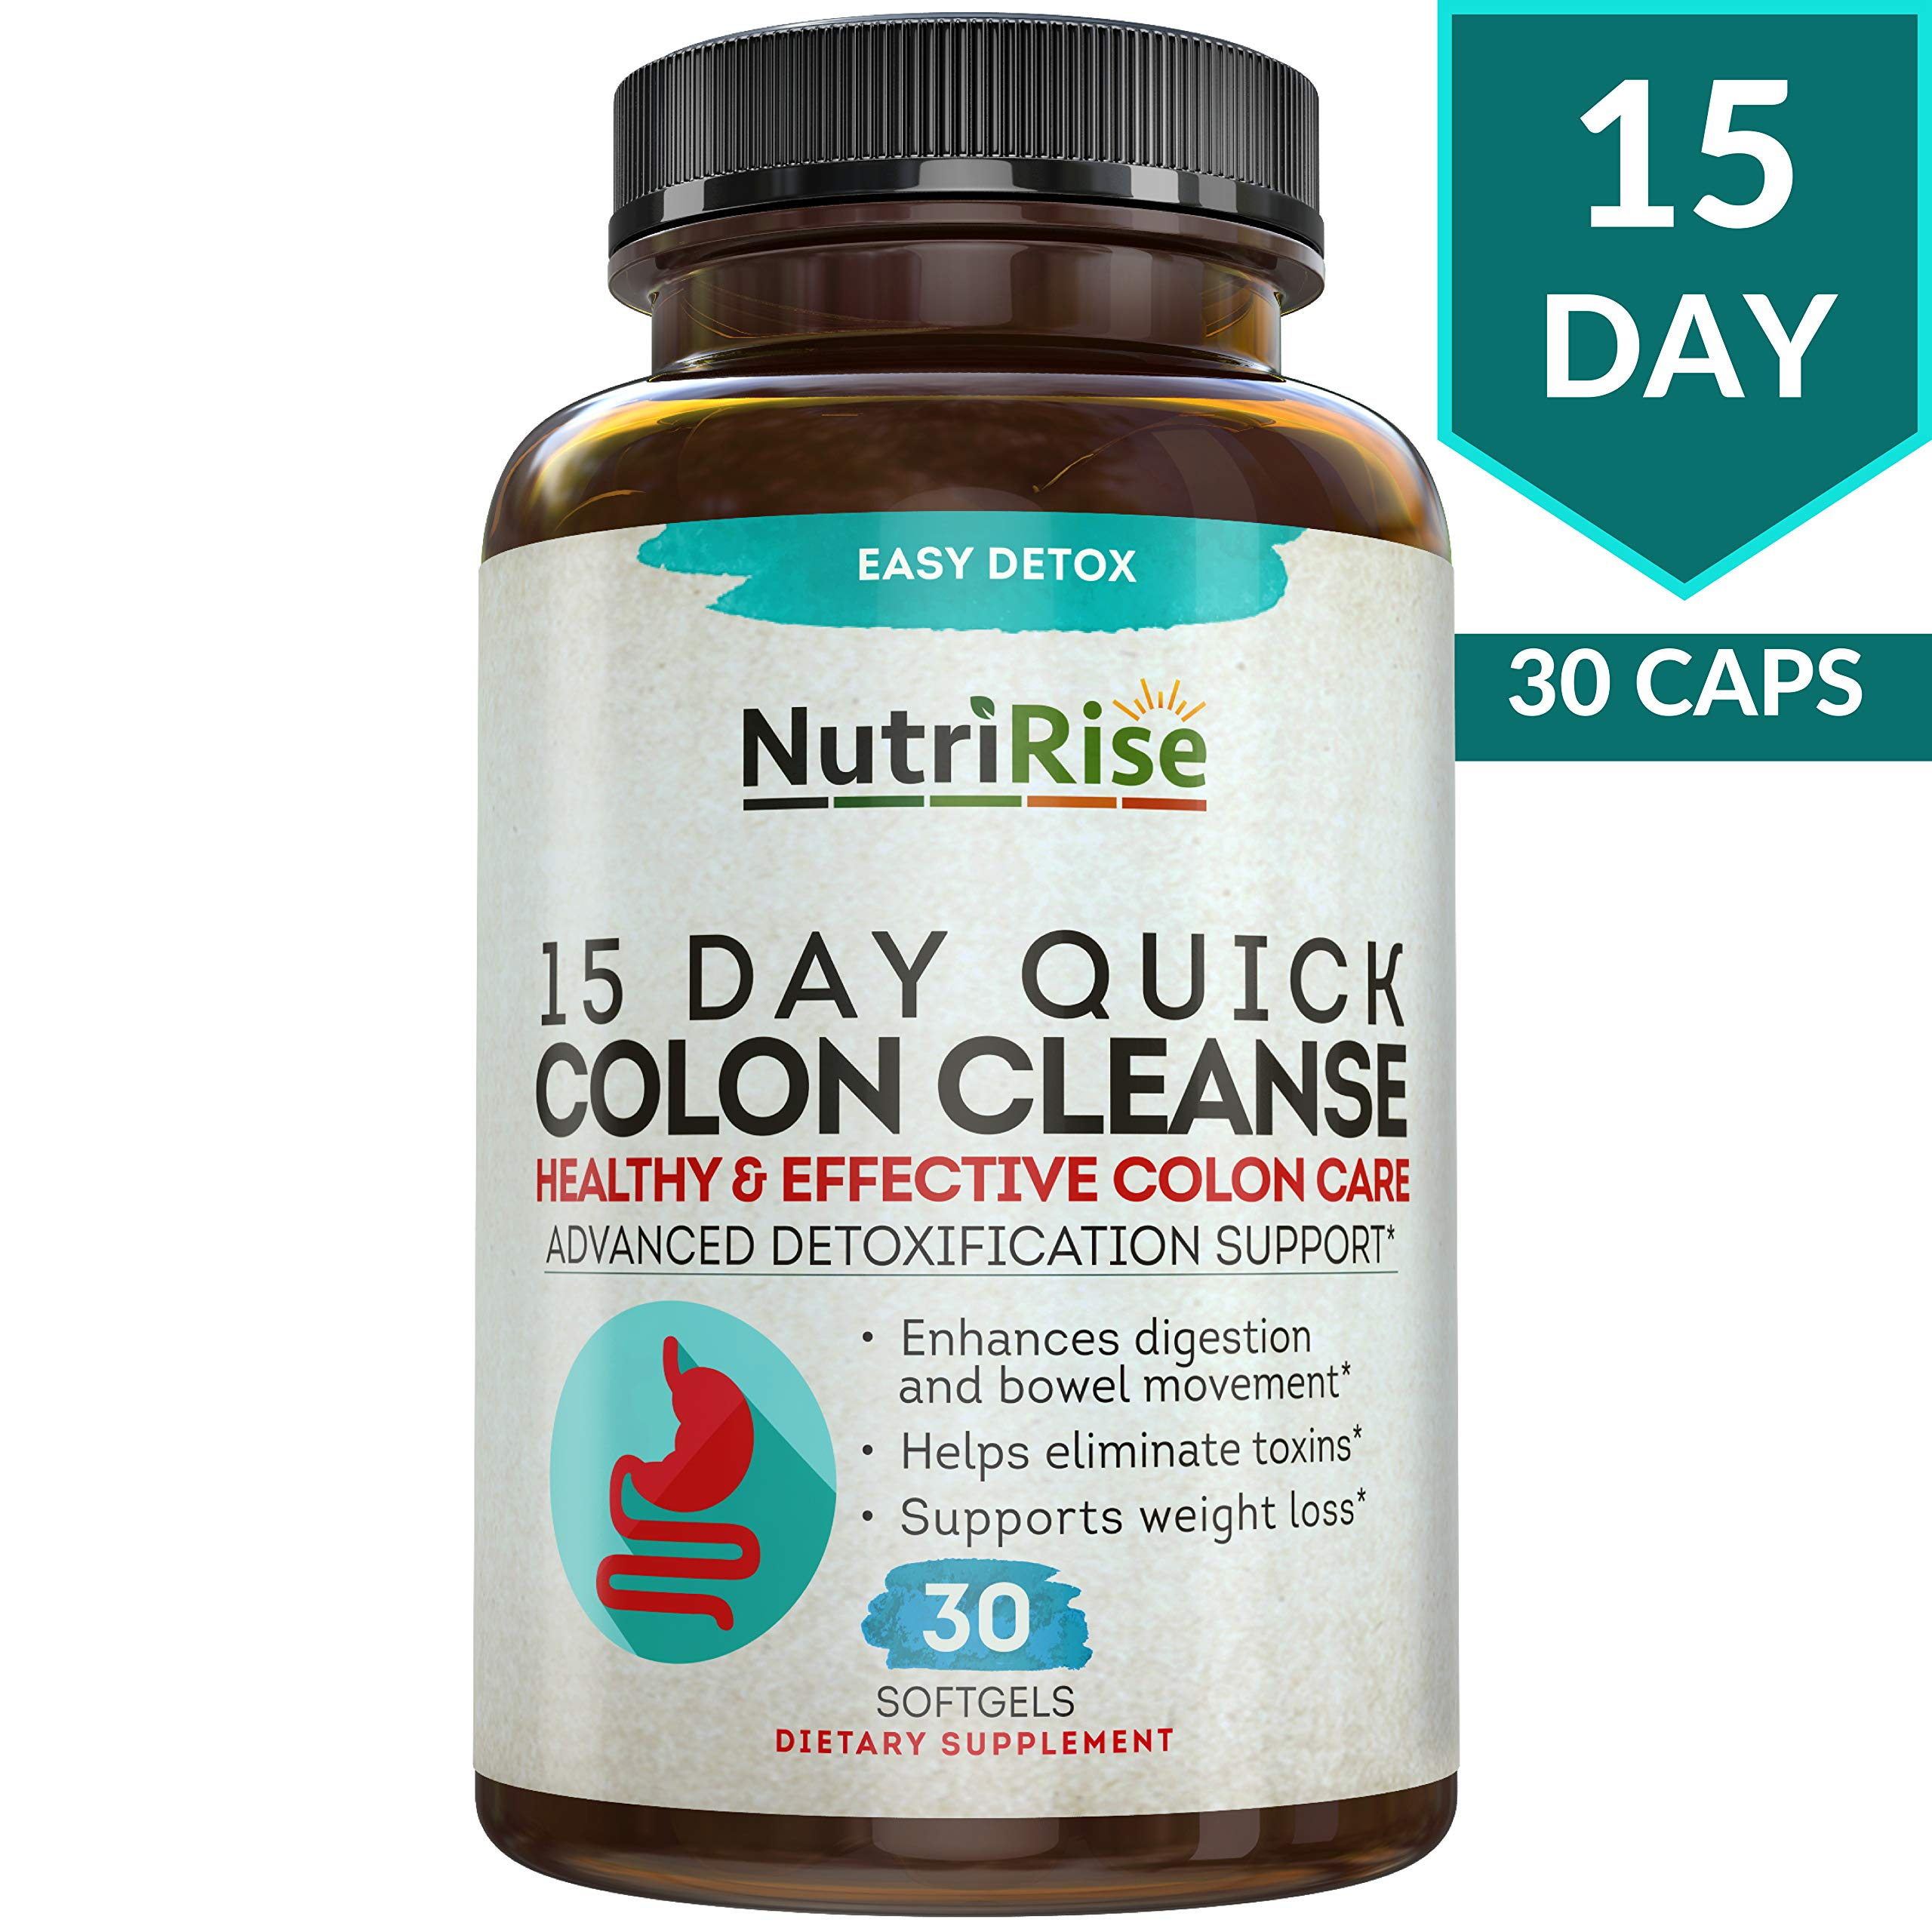 Colon Cleanser Detox For Weight Loss 15 Day Fast Acting Extra Strength Cleanse With Probiotic